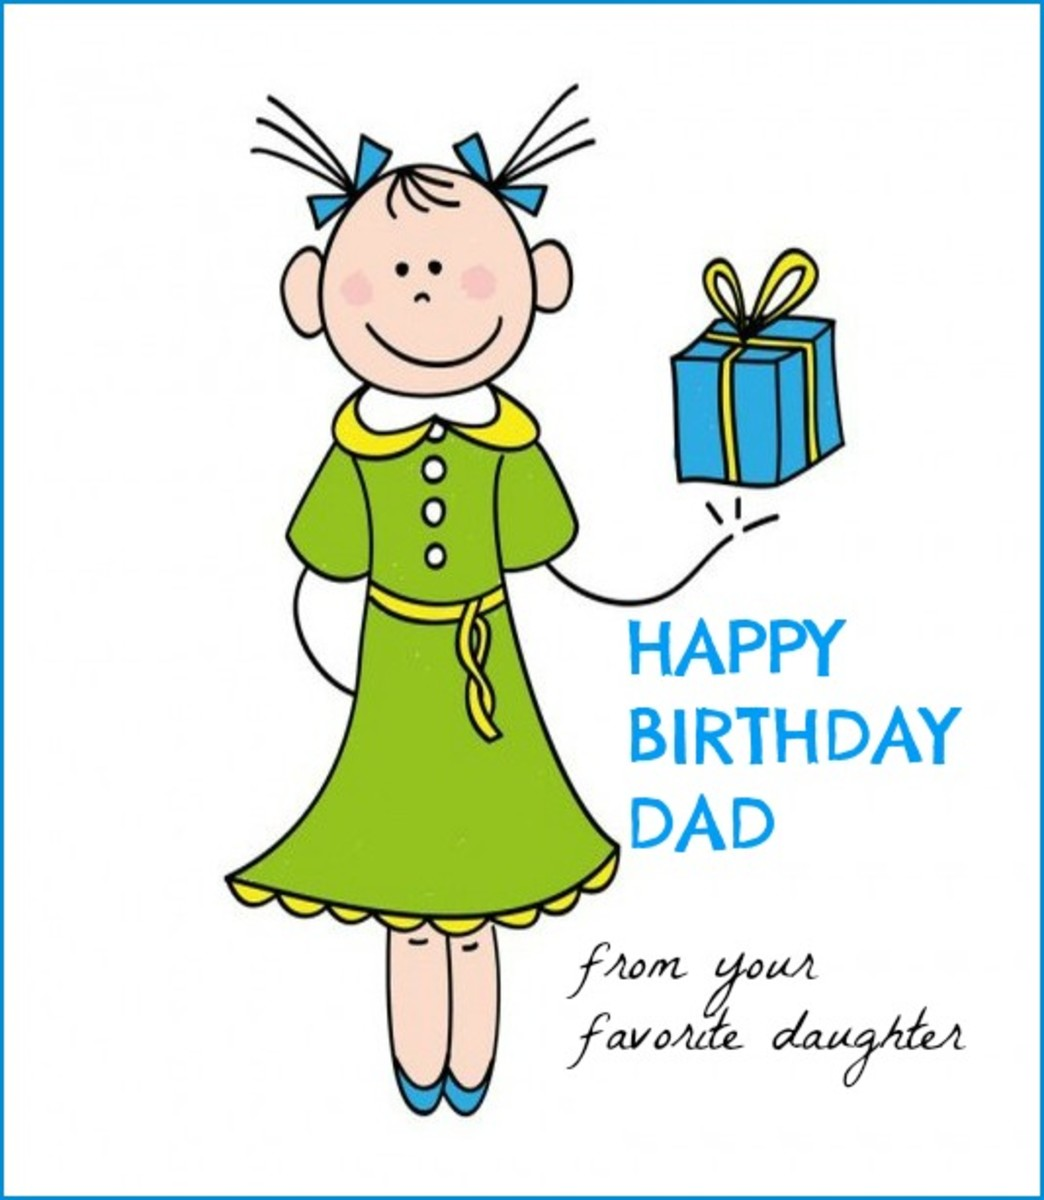 Happy Birthday Dad Free Birthday Greetings Cards Messages